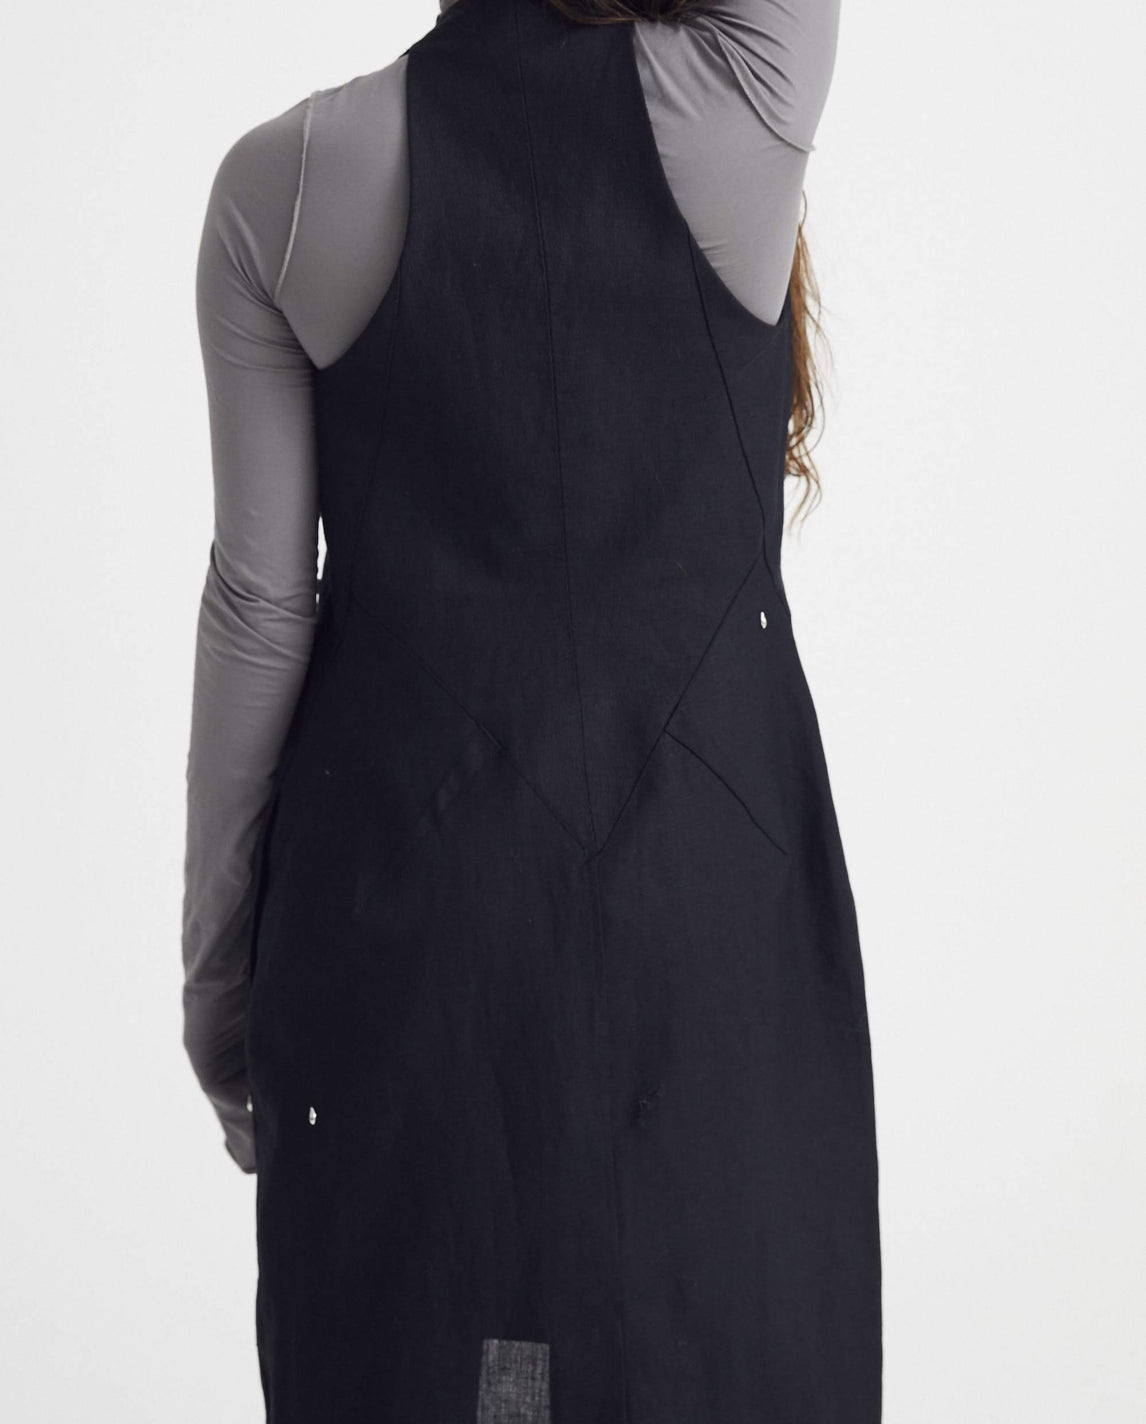 Connor Dress - Black WOMENS SAMUEL GUI YANG